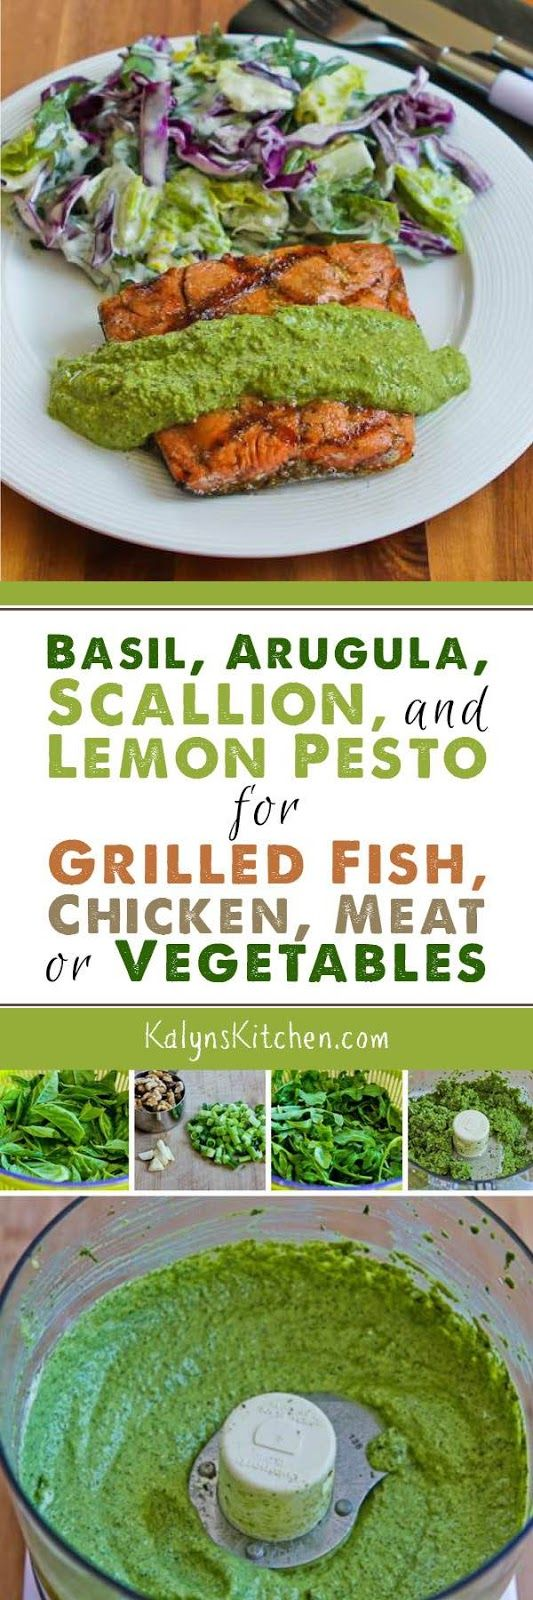 It may look suspiciously green, but this Basil, Arugula, Scallions, and Lemon Pesto Sauce for Grilled Fish, Chicken, or Vegetables is a delicious way to use fresh basil! [found on KalynsKitchen.com]